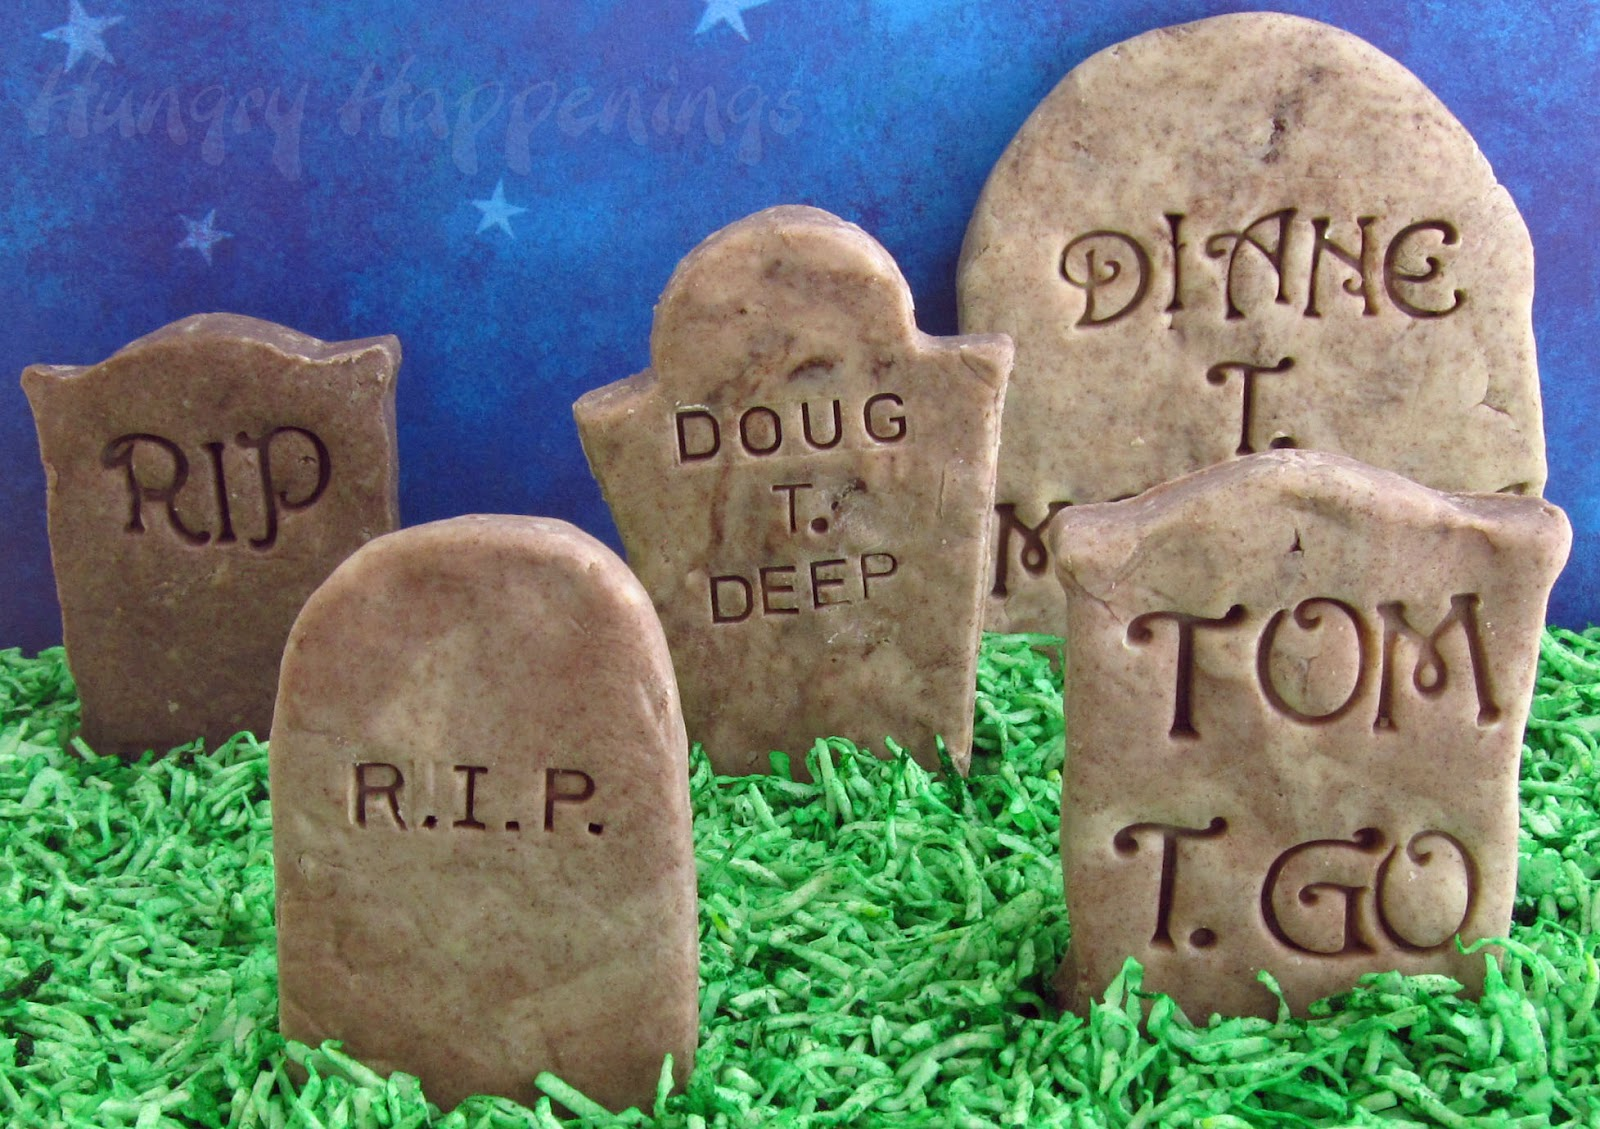 cookies 'n cream fudge tombstones - add clever epitaphs to candy